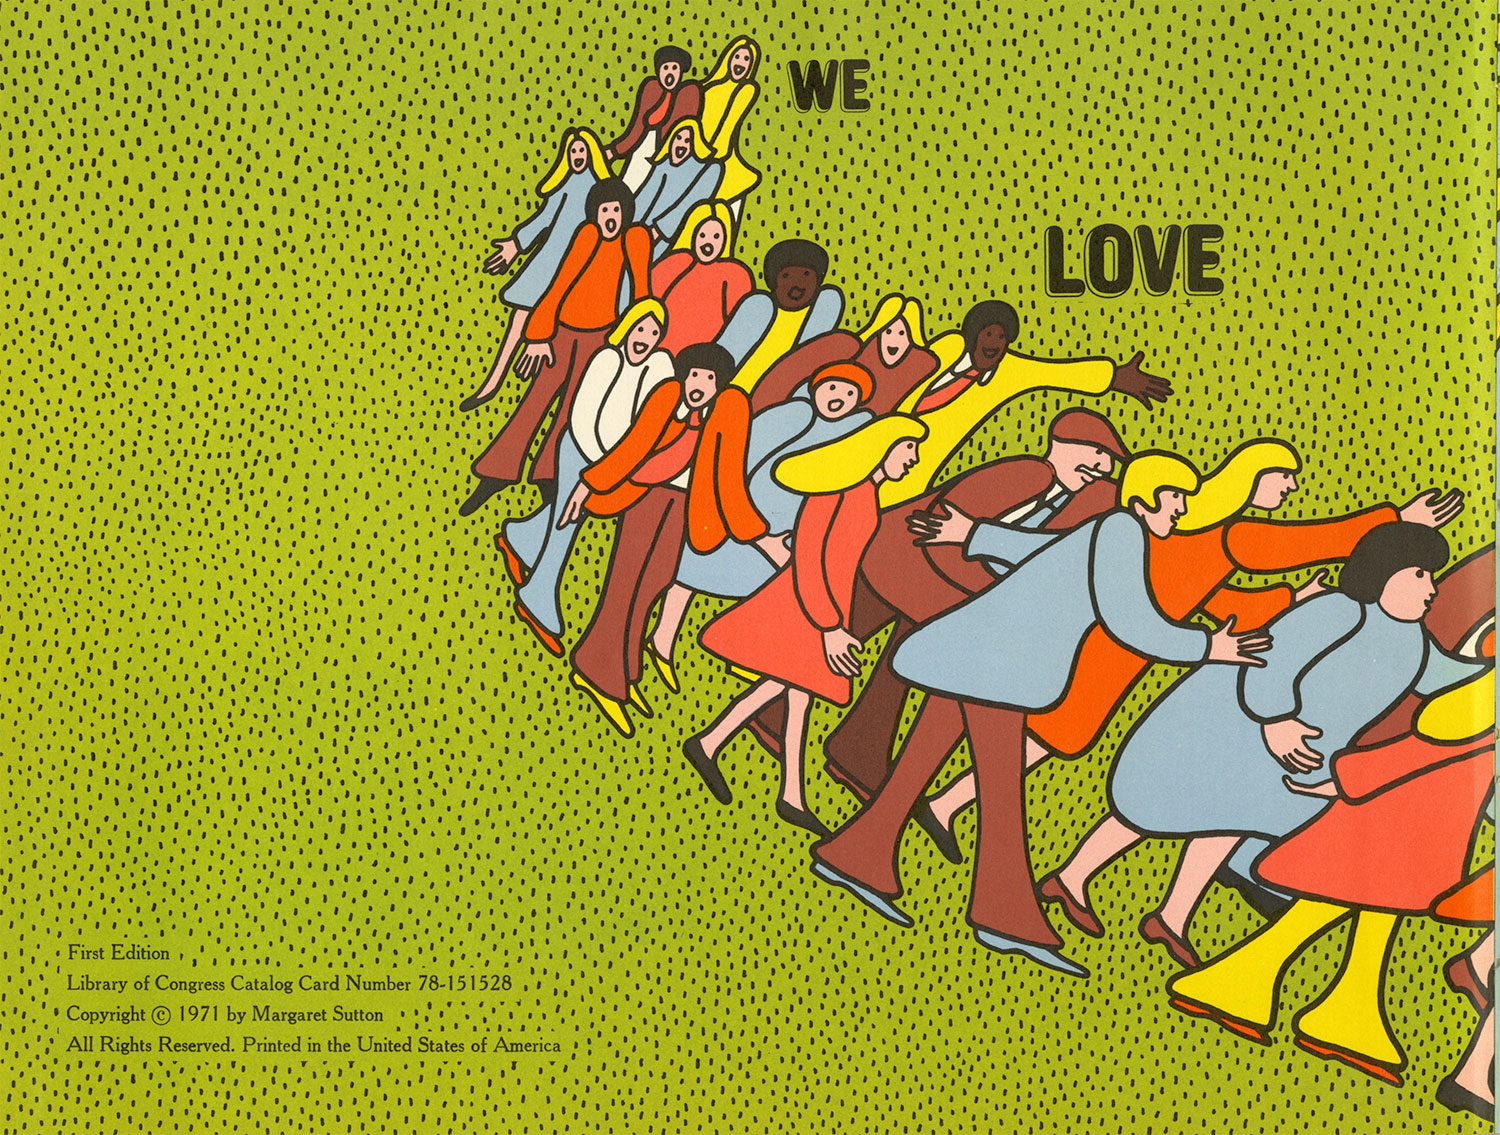 love-beatles-1.jpg